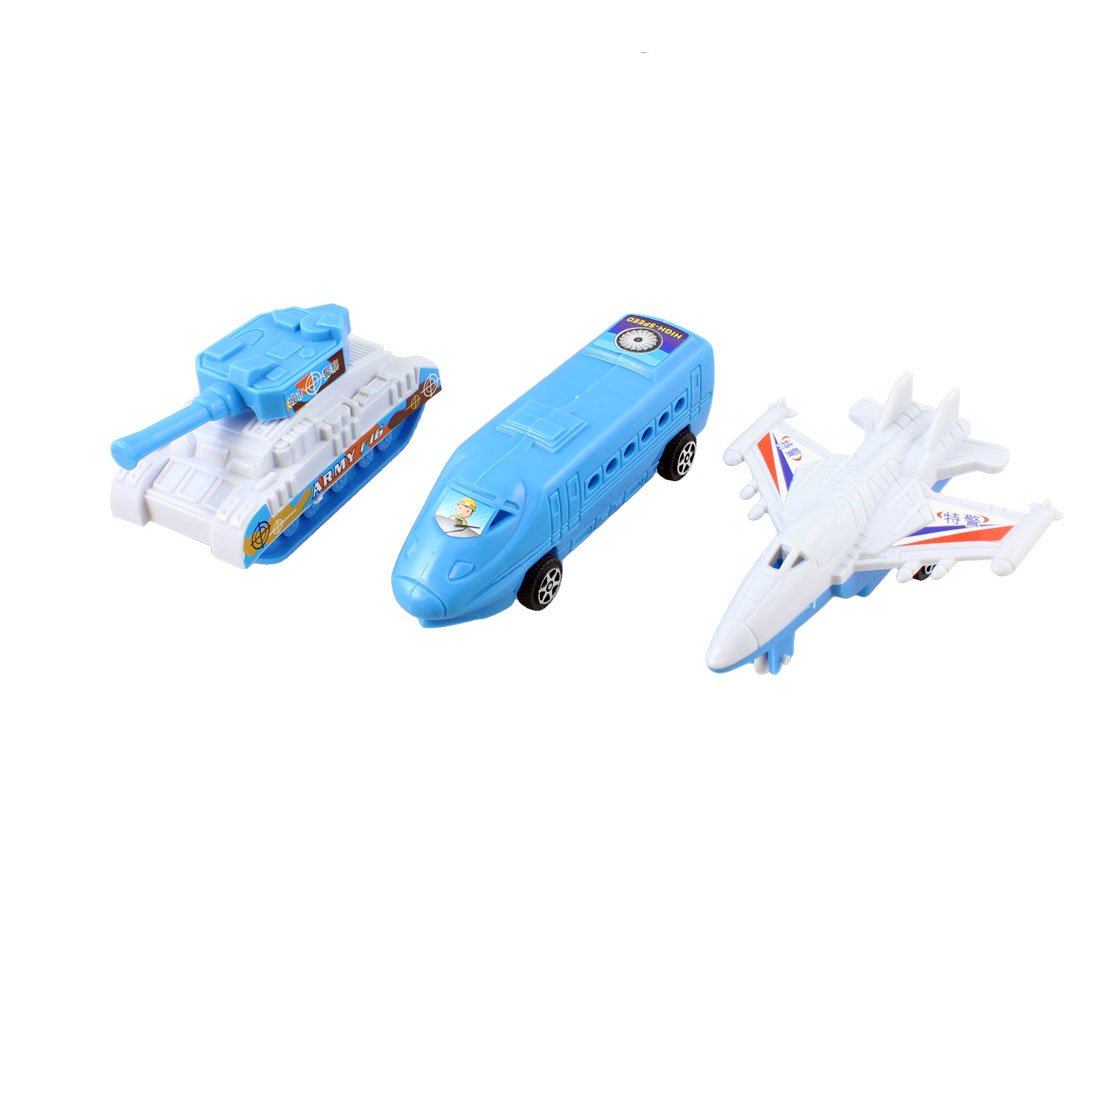 3 in 1 Set Blue White Plastic Airplane Battle Tank Car Toy